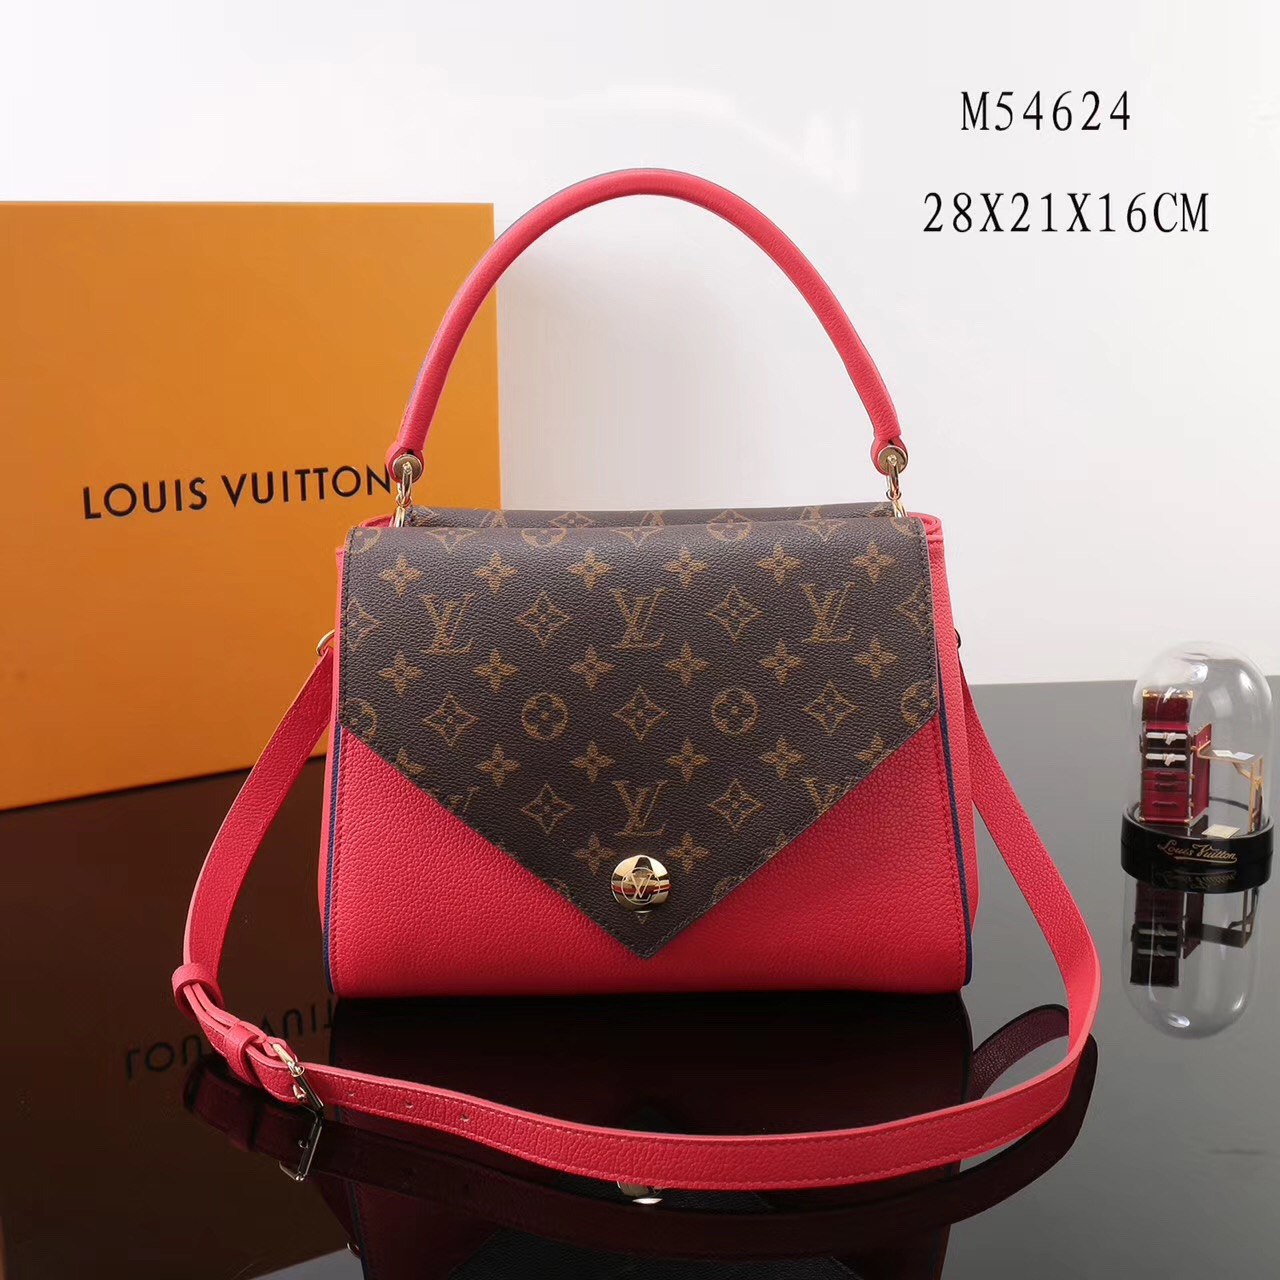 9f5bd9aac42b LV Louis Vuitton Monogram Double V Handbags Shoulder M54624 Leather bags  Red ...